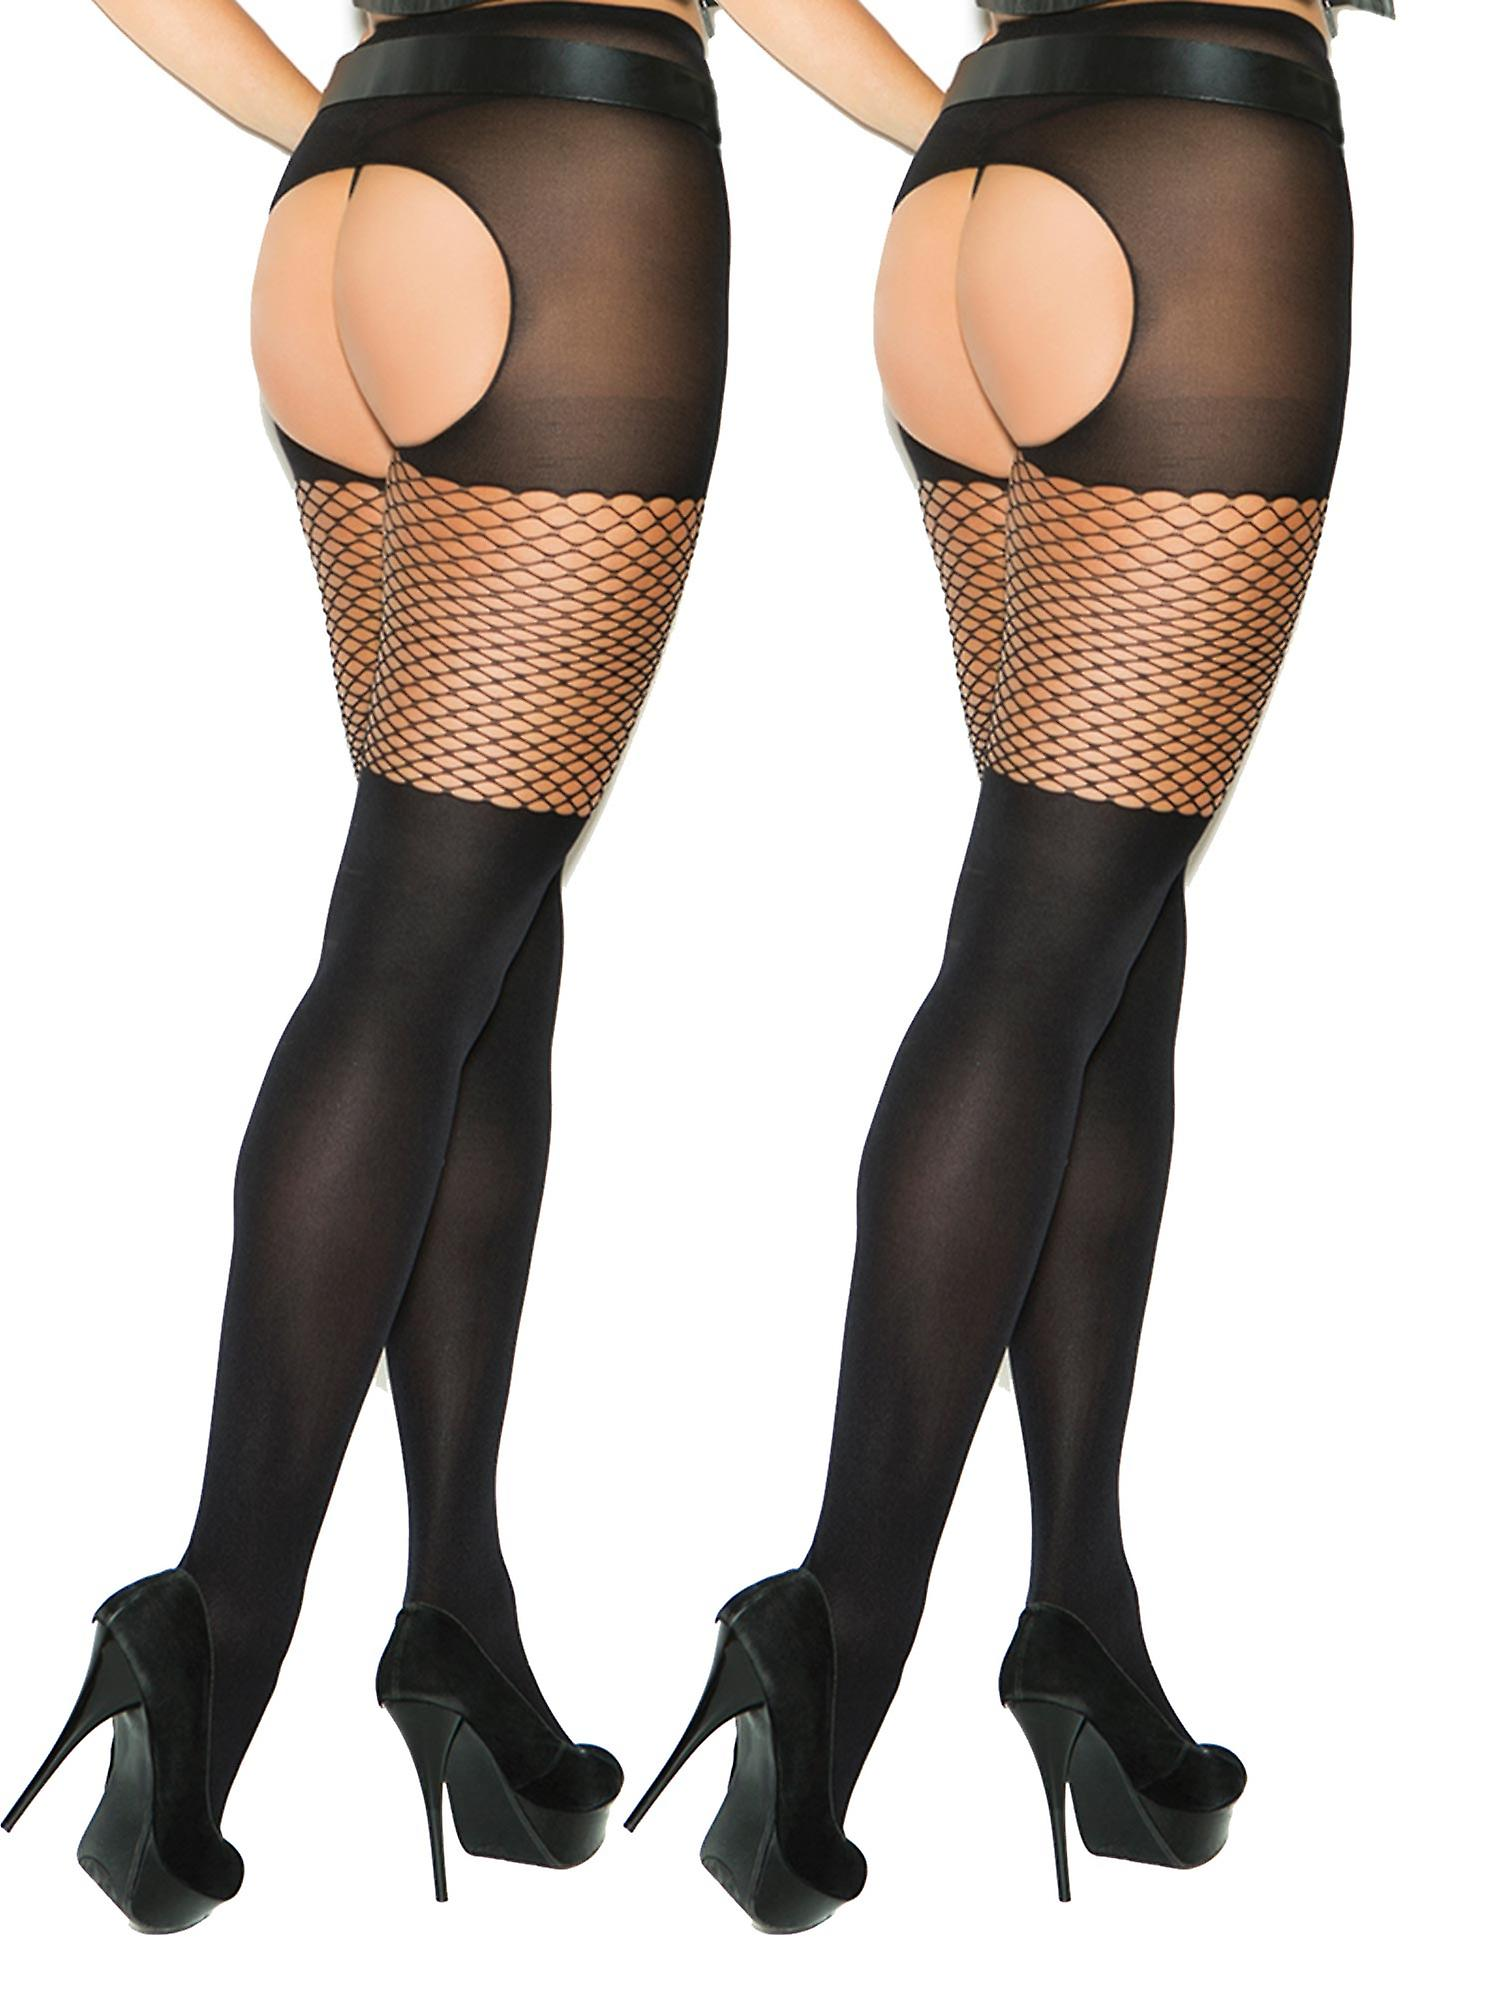 d26bd41cc92 Womens Plus Size Opaque Crotchless Diamond Top Pantyhose Tights